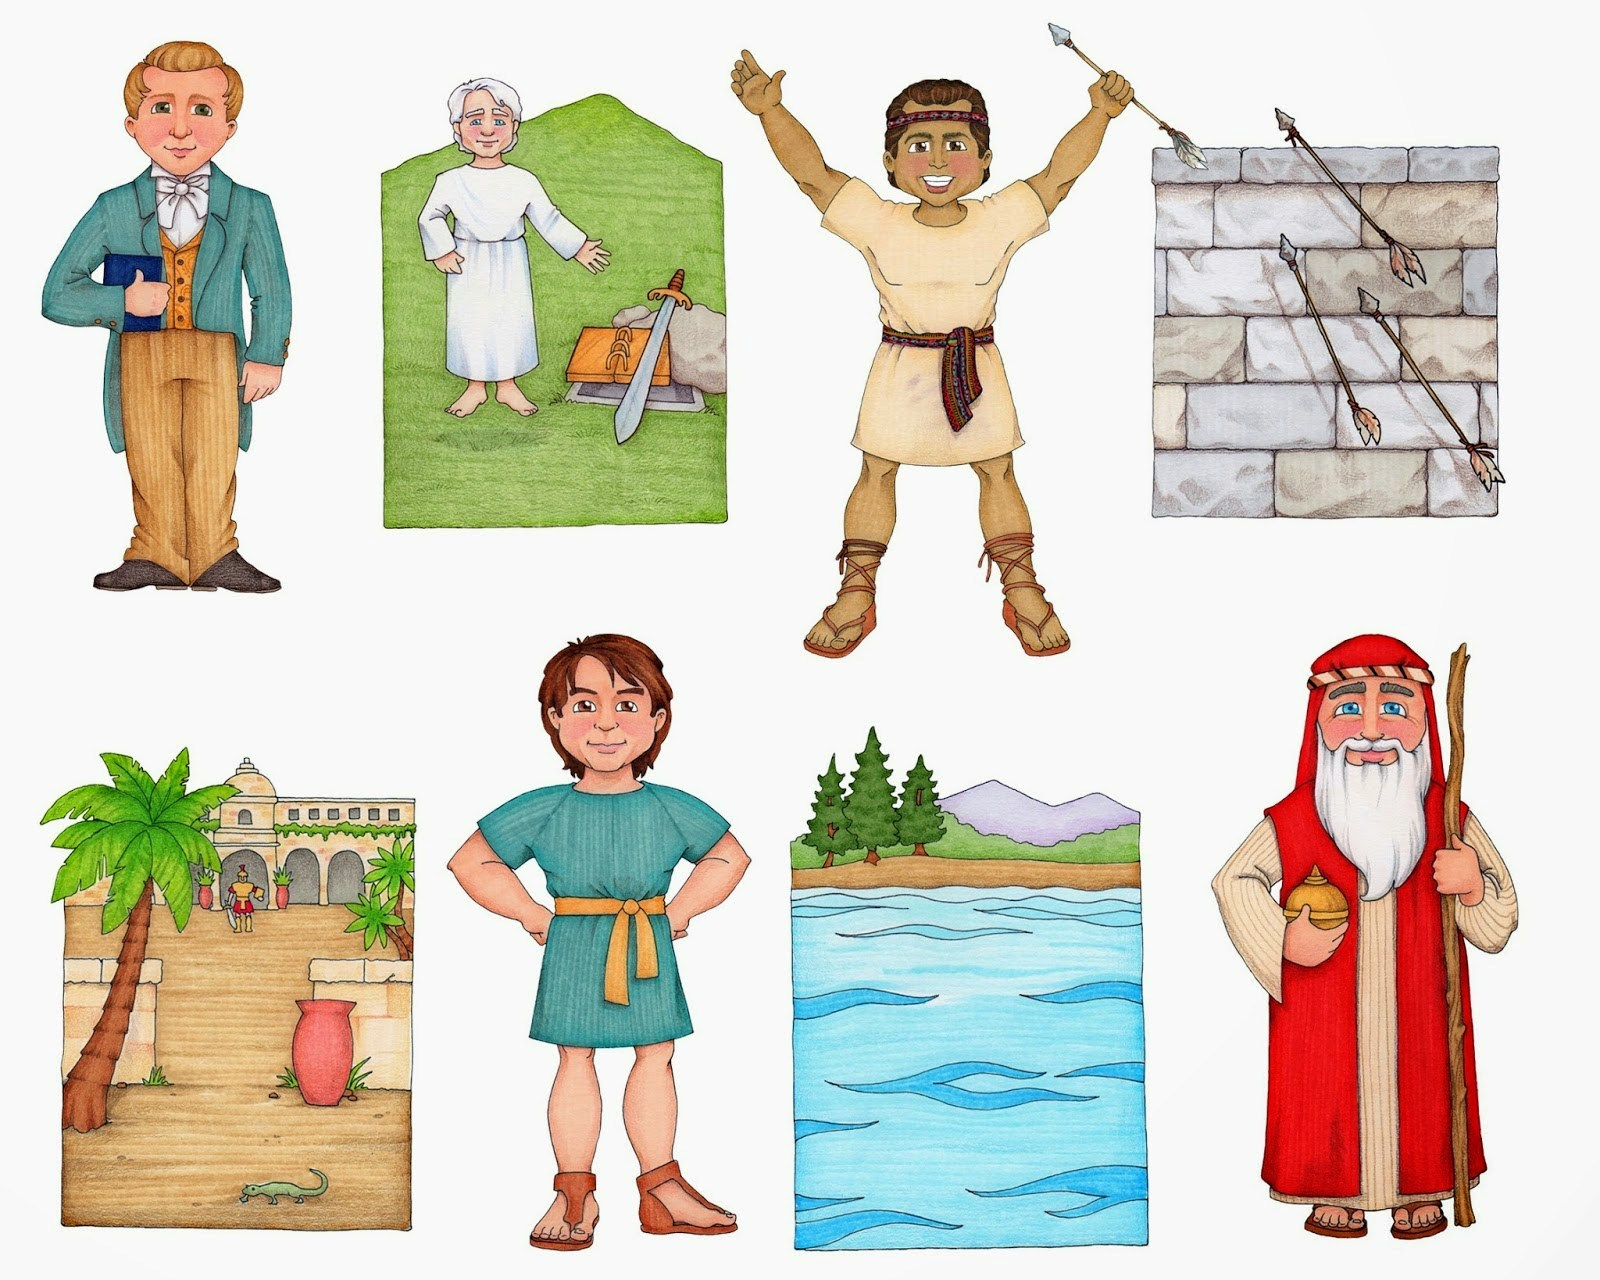 Samuel the lamanite clipart 5 » Clipart Portal.